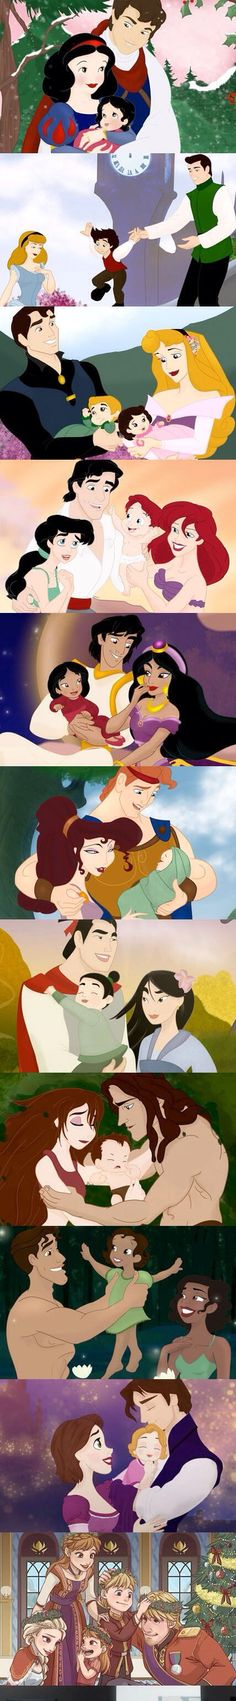 If the Disney movie characters had babies, this is what they would look like ,and they are adorable!!!!